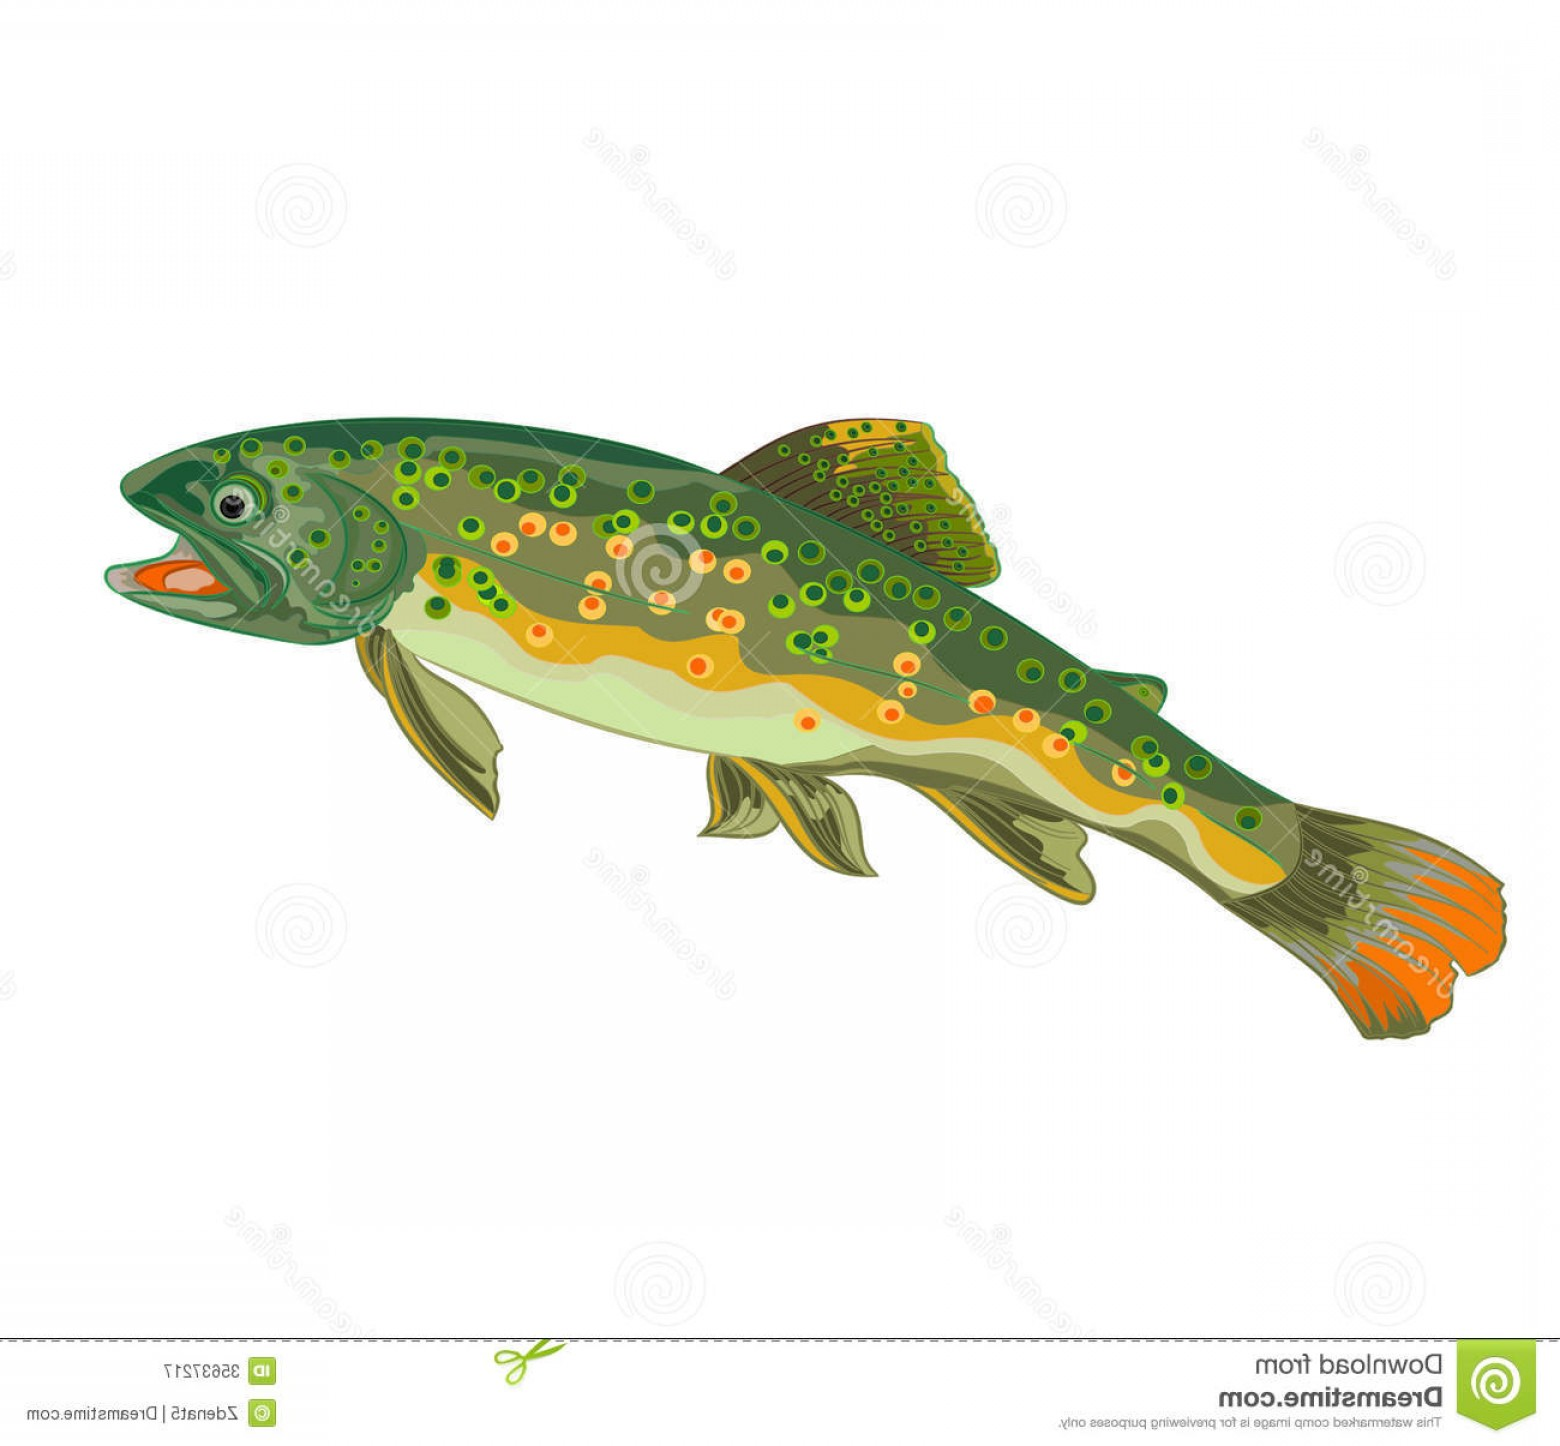 Speckled Trout Vector: Royalty Free Stock Photography Brook Trout Fish Jumping Beauty Wildness Vector Illustration Image